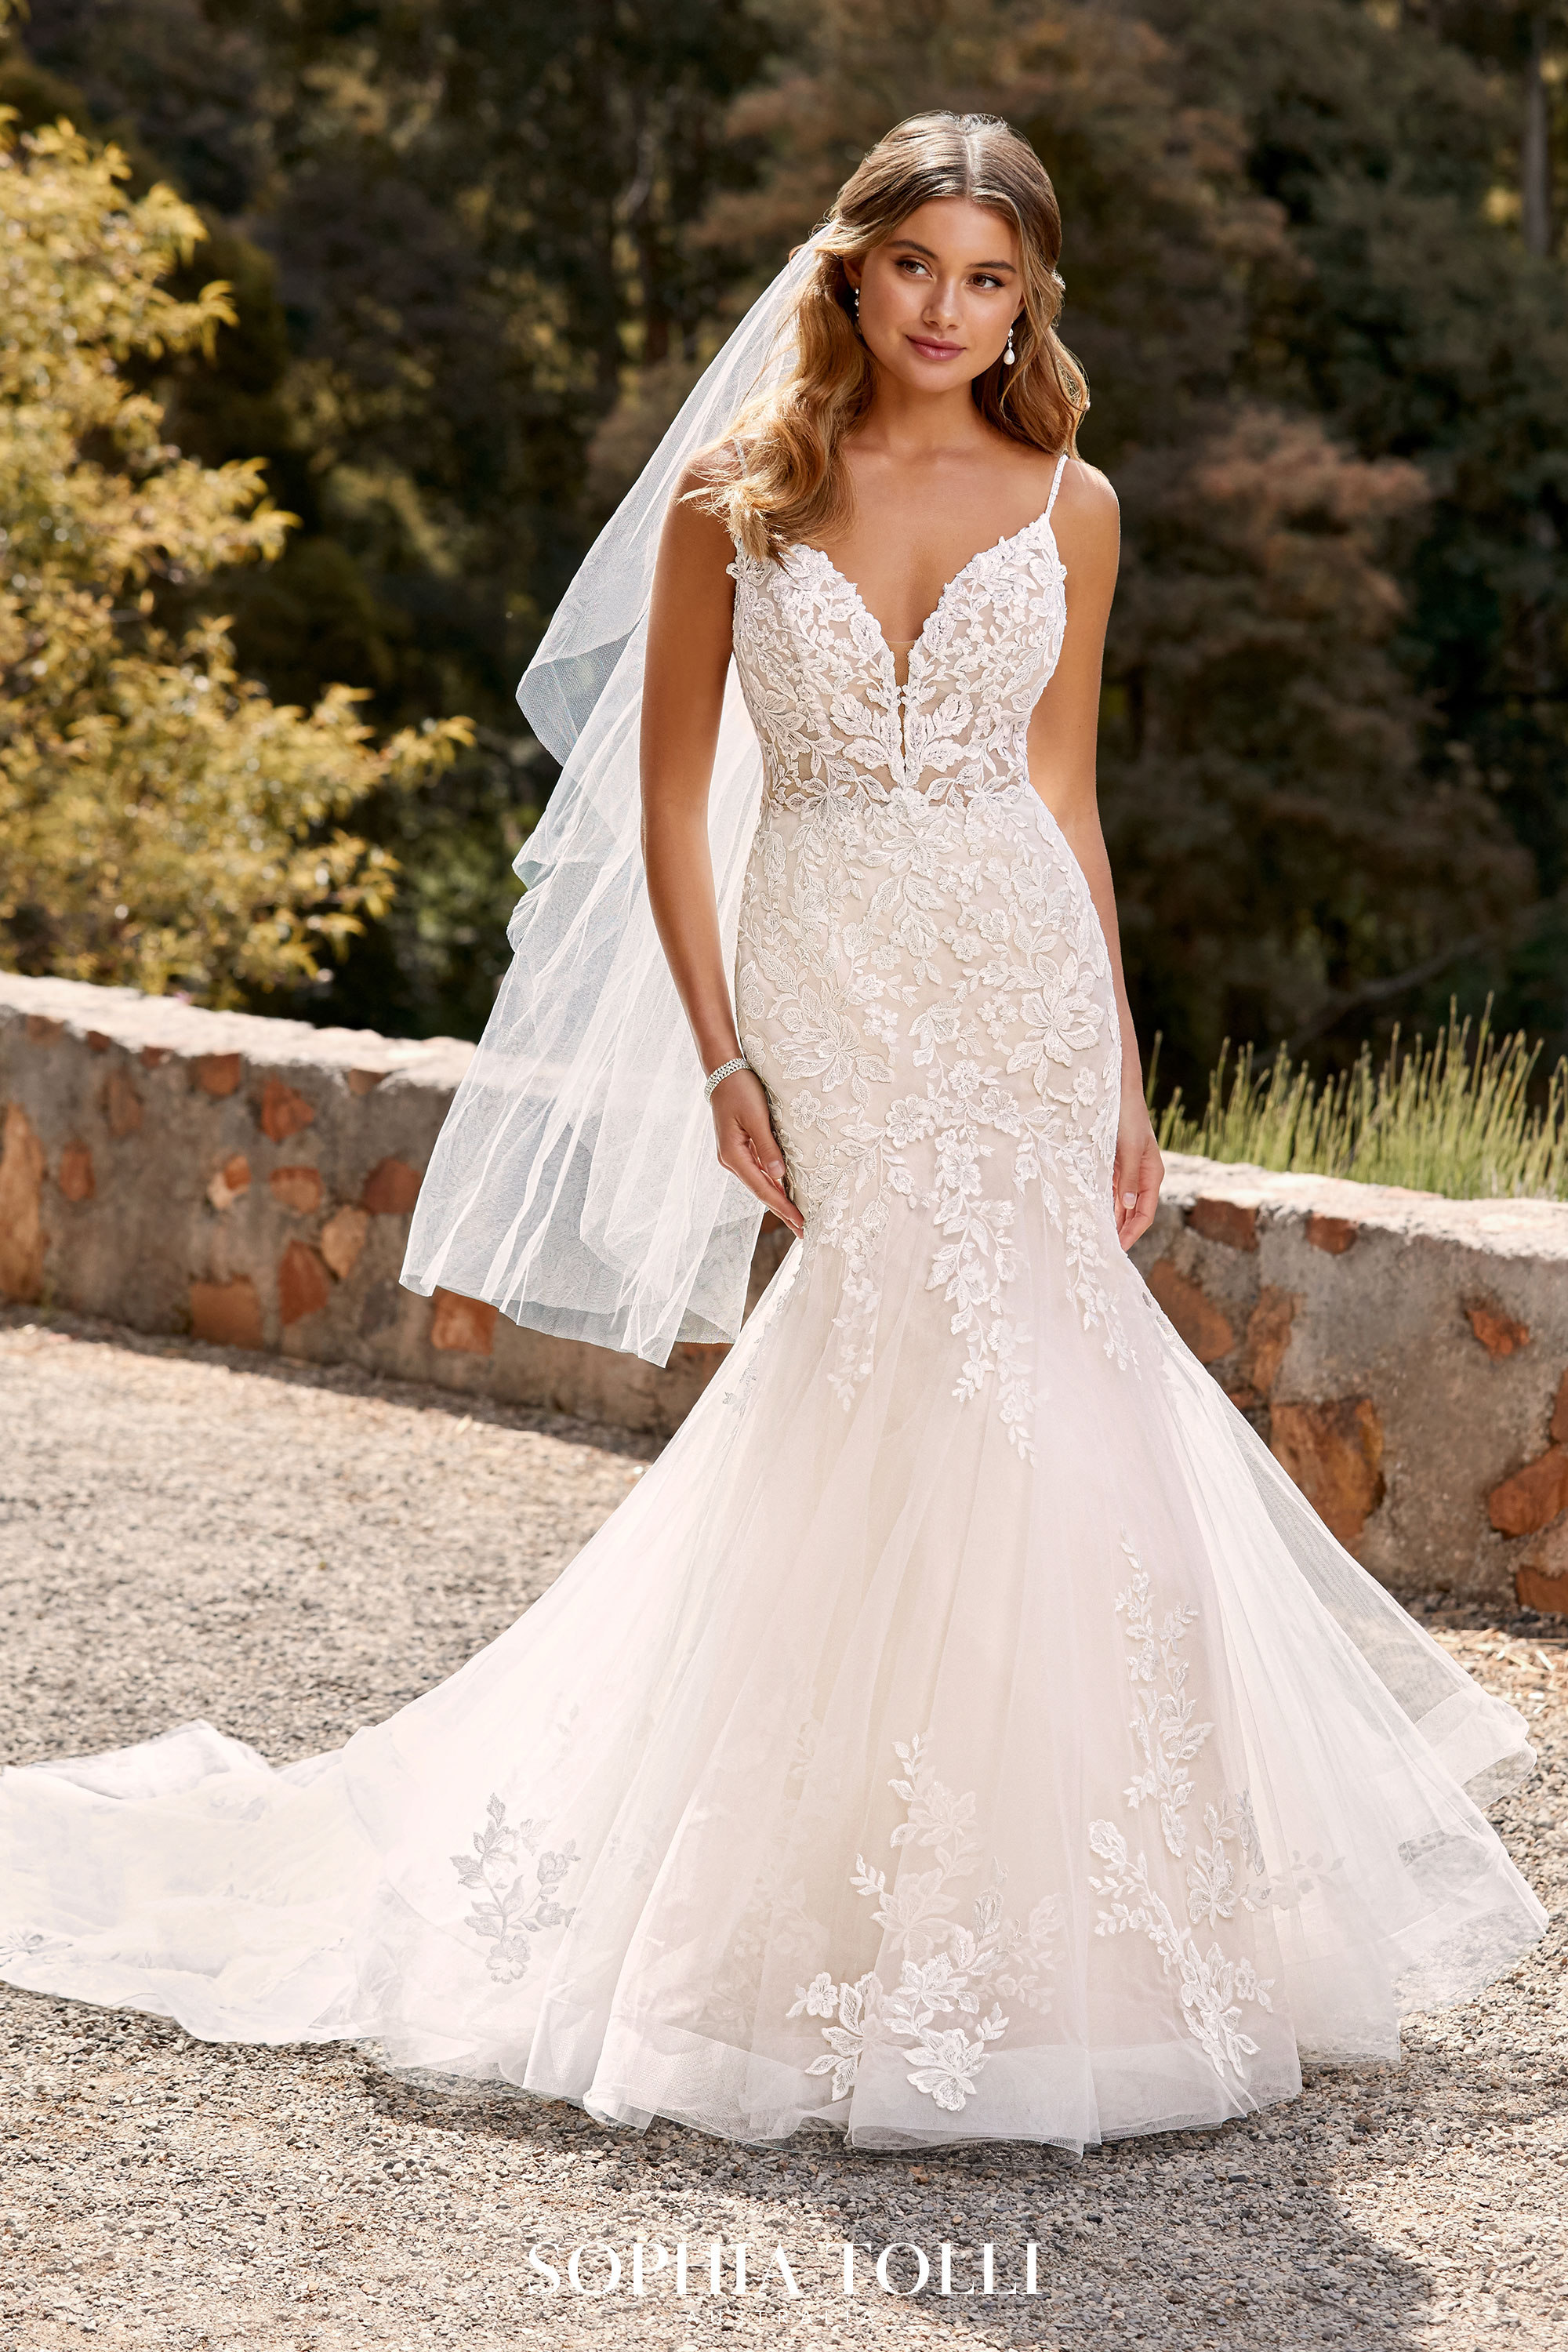 Sexy Wedding Dresses | Sophia Tolli